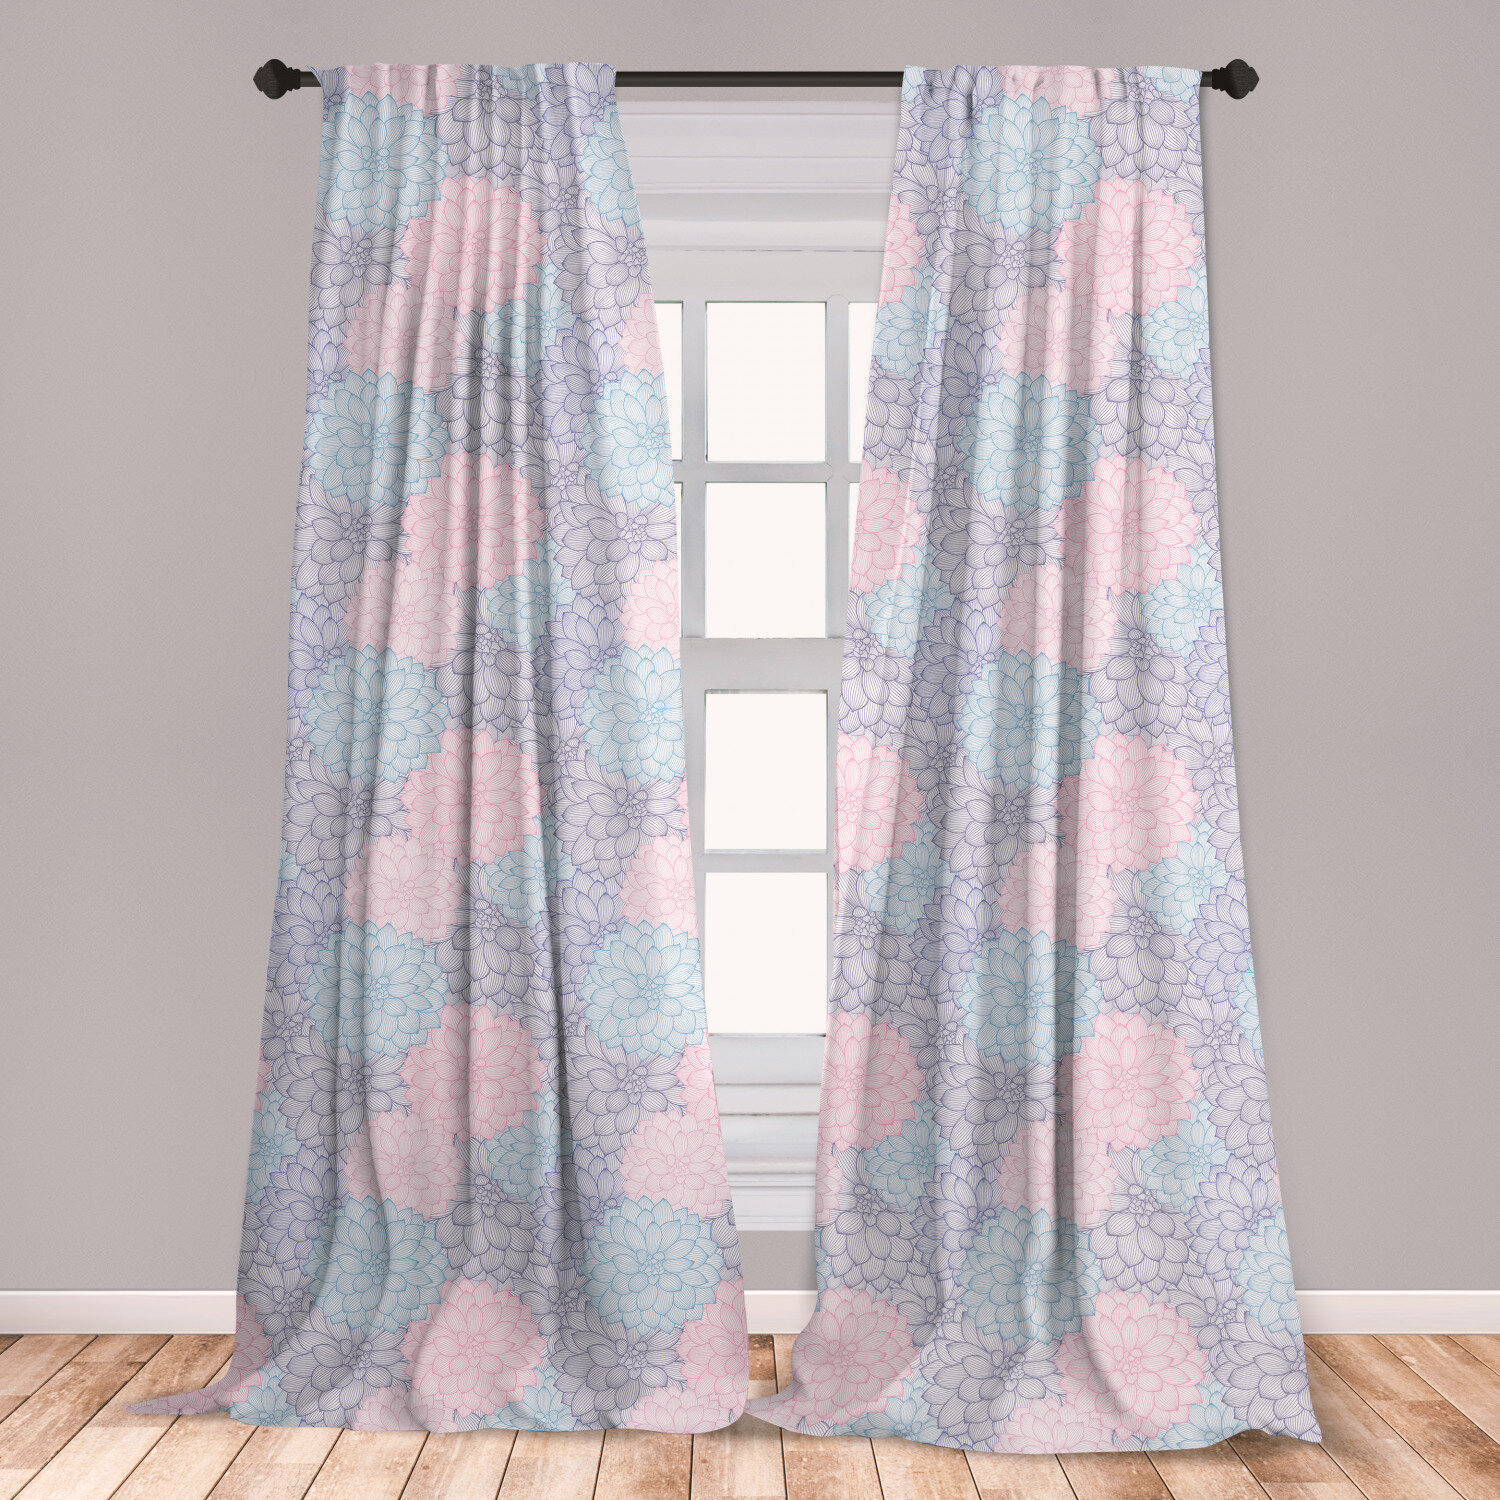 East Urban Home Ambesonne Dahlia Curtains Stripy Hand Drawn Dahlia Pale Colored Blossoms In Pink Purple And Blue Window Treatments 2 Panel Set For Living Room Bedroom Decor 56 X 63 Sea Green Rose Taupe